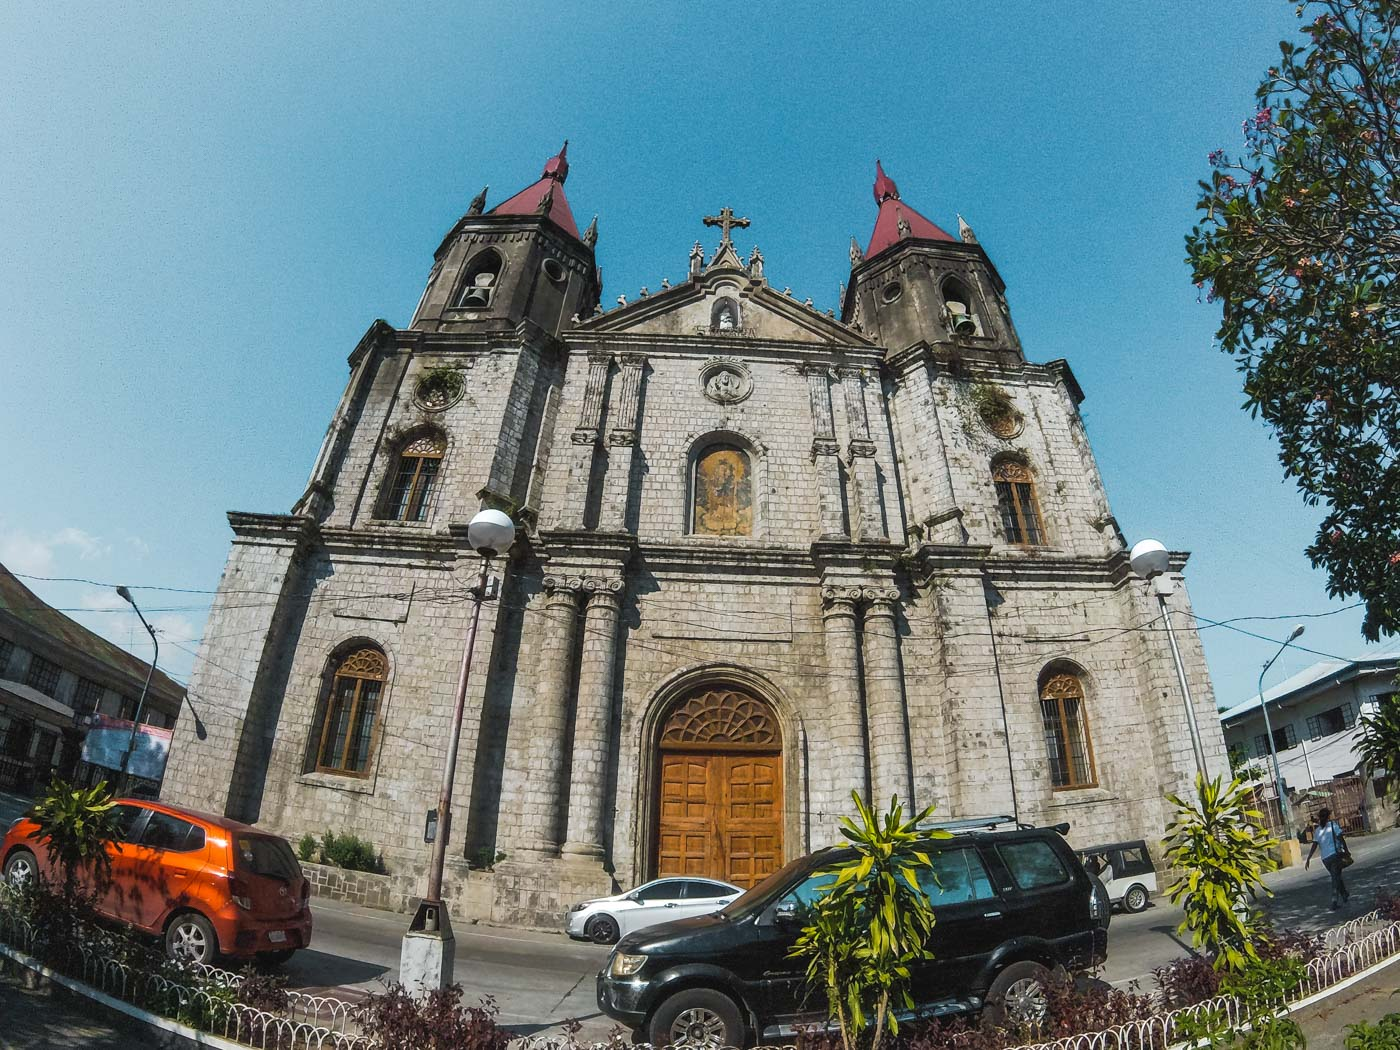 FEMINIST. This only Gothic-Renaissance church outside Manila honors its patron saint - St. Anne along with the 16 images of women saints on each pillar on the aisles of the church. Photo by Carl Don Berwin/Rappler